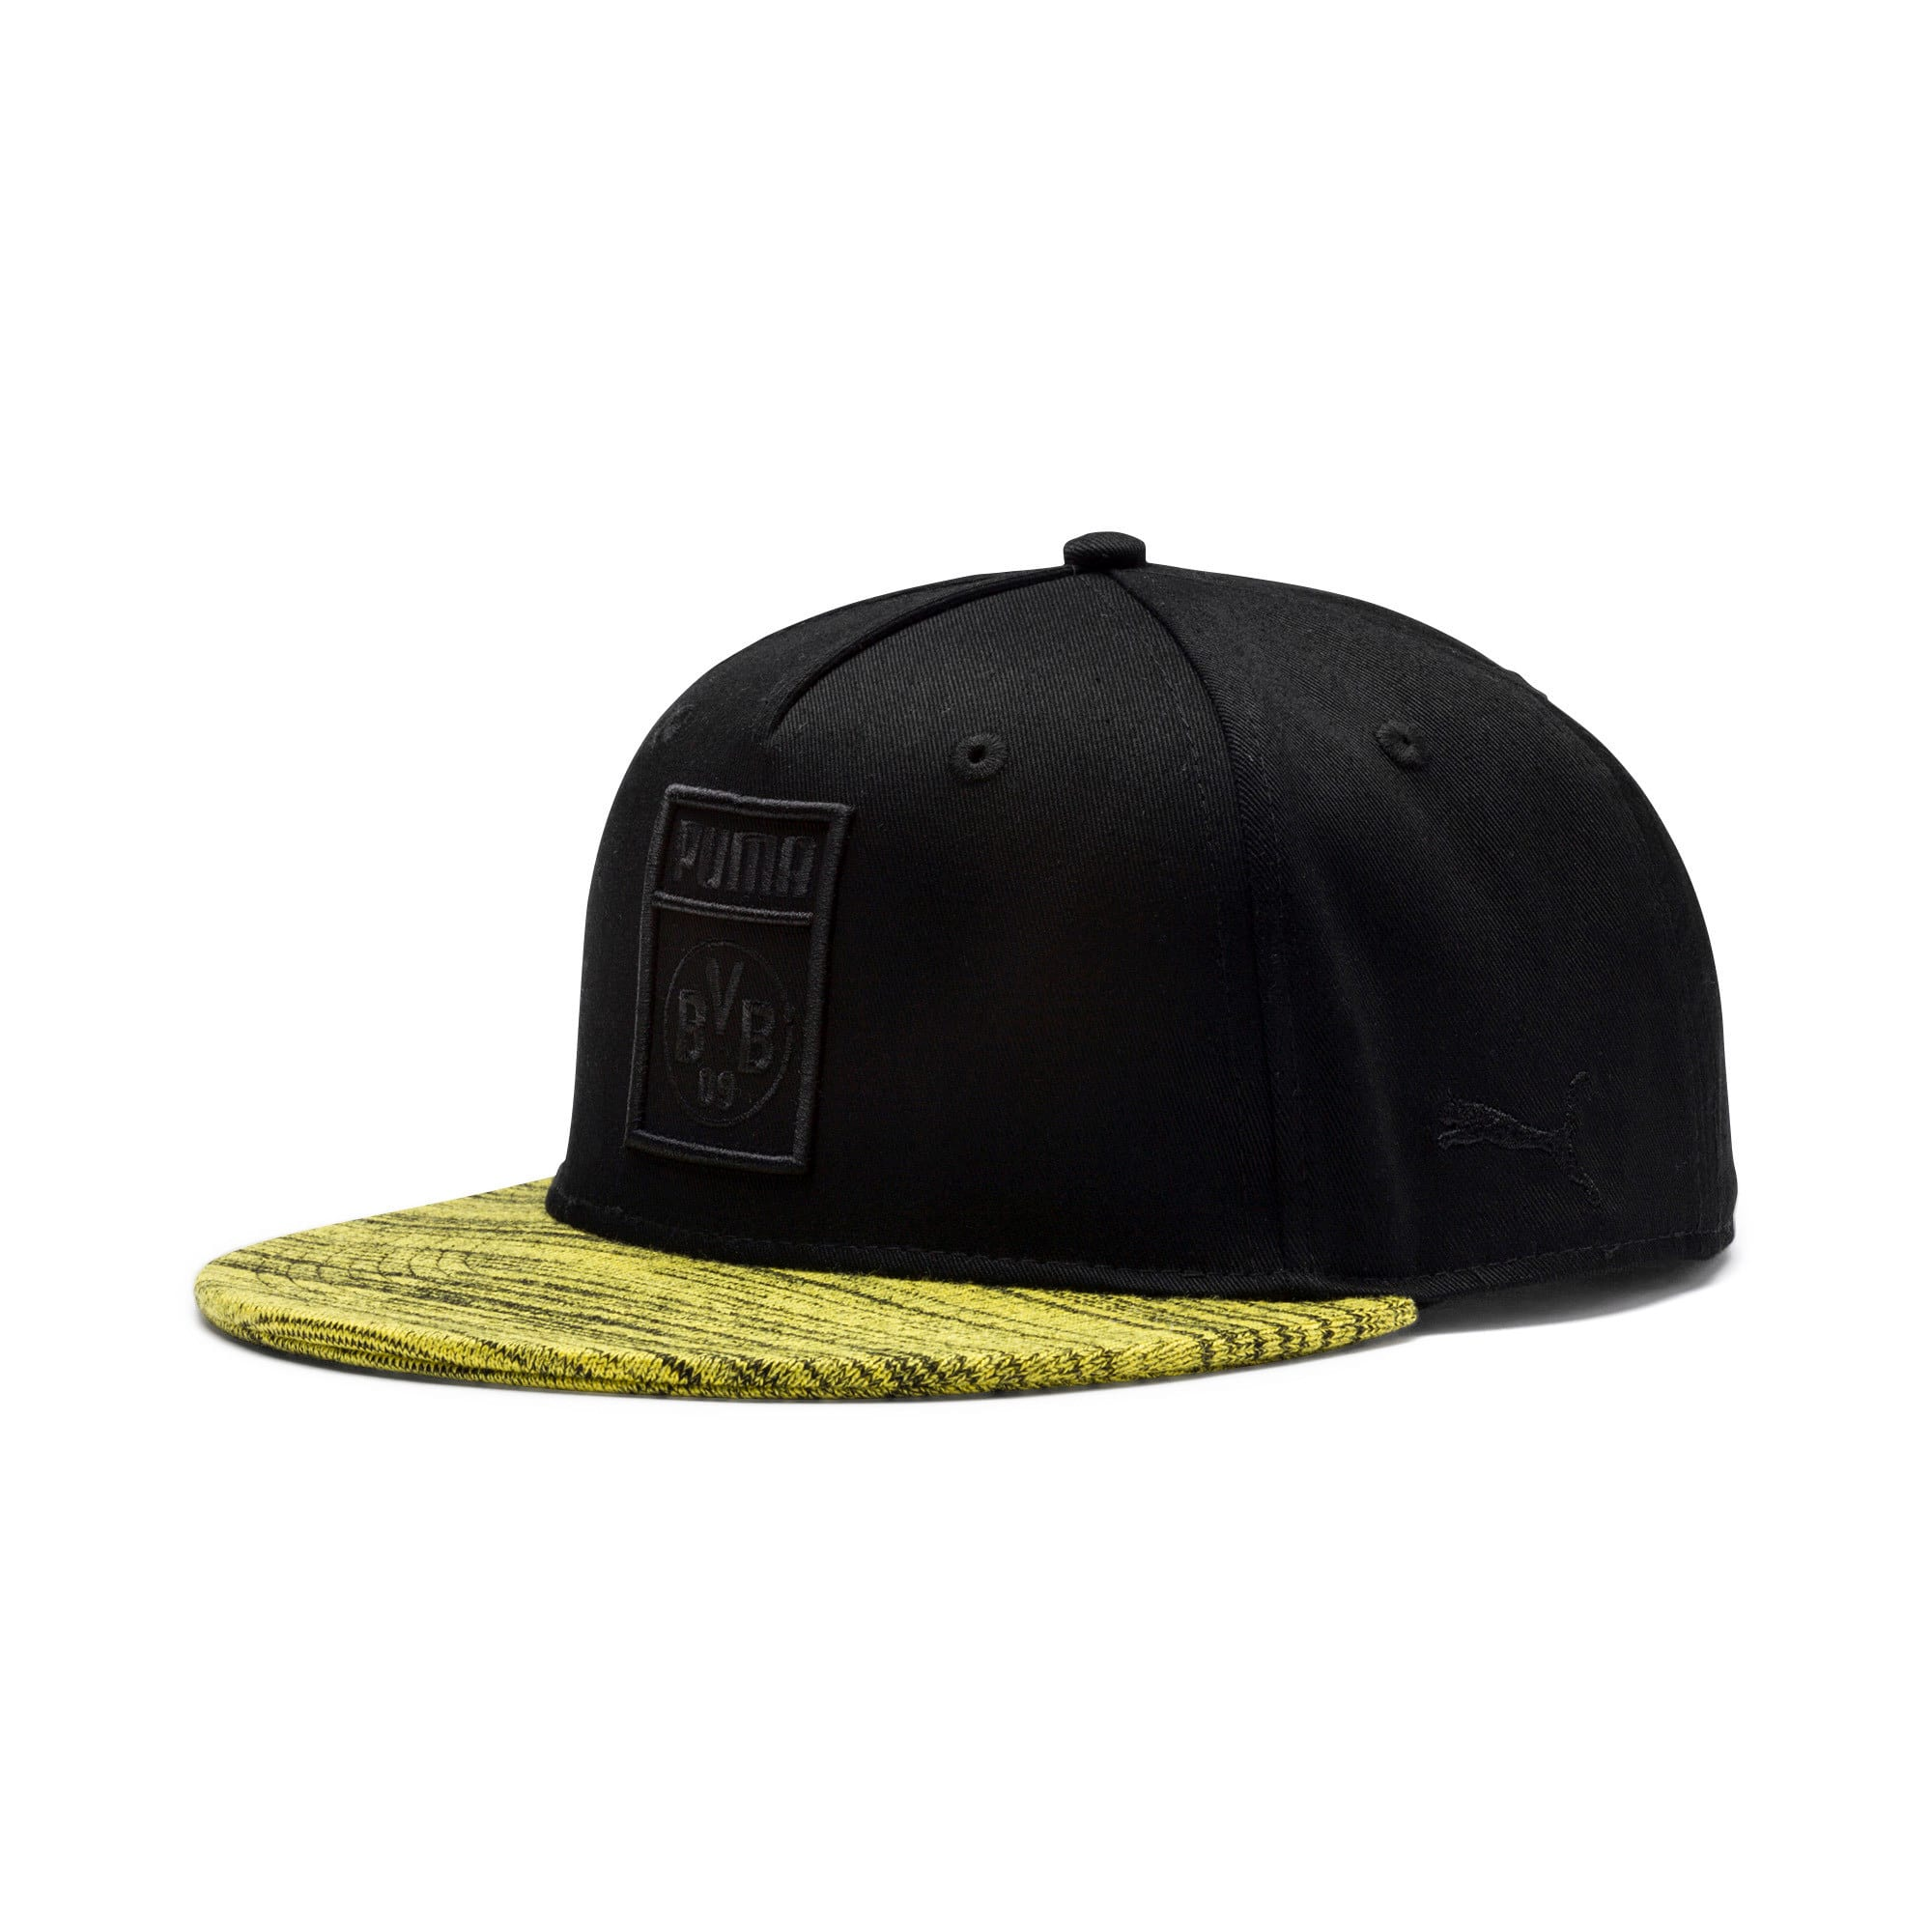 Thumbnail 1 of BVB Flatbrim Hat, Puma Black, medium